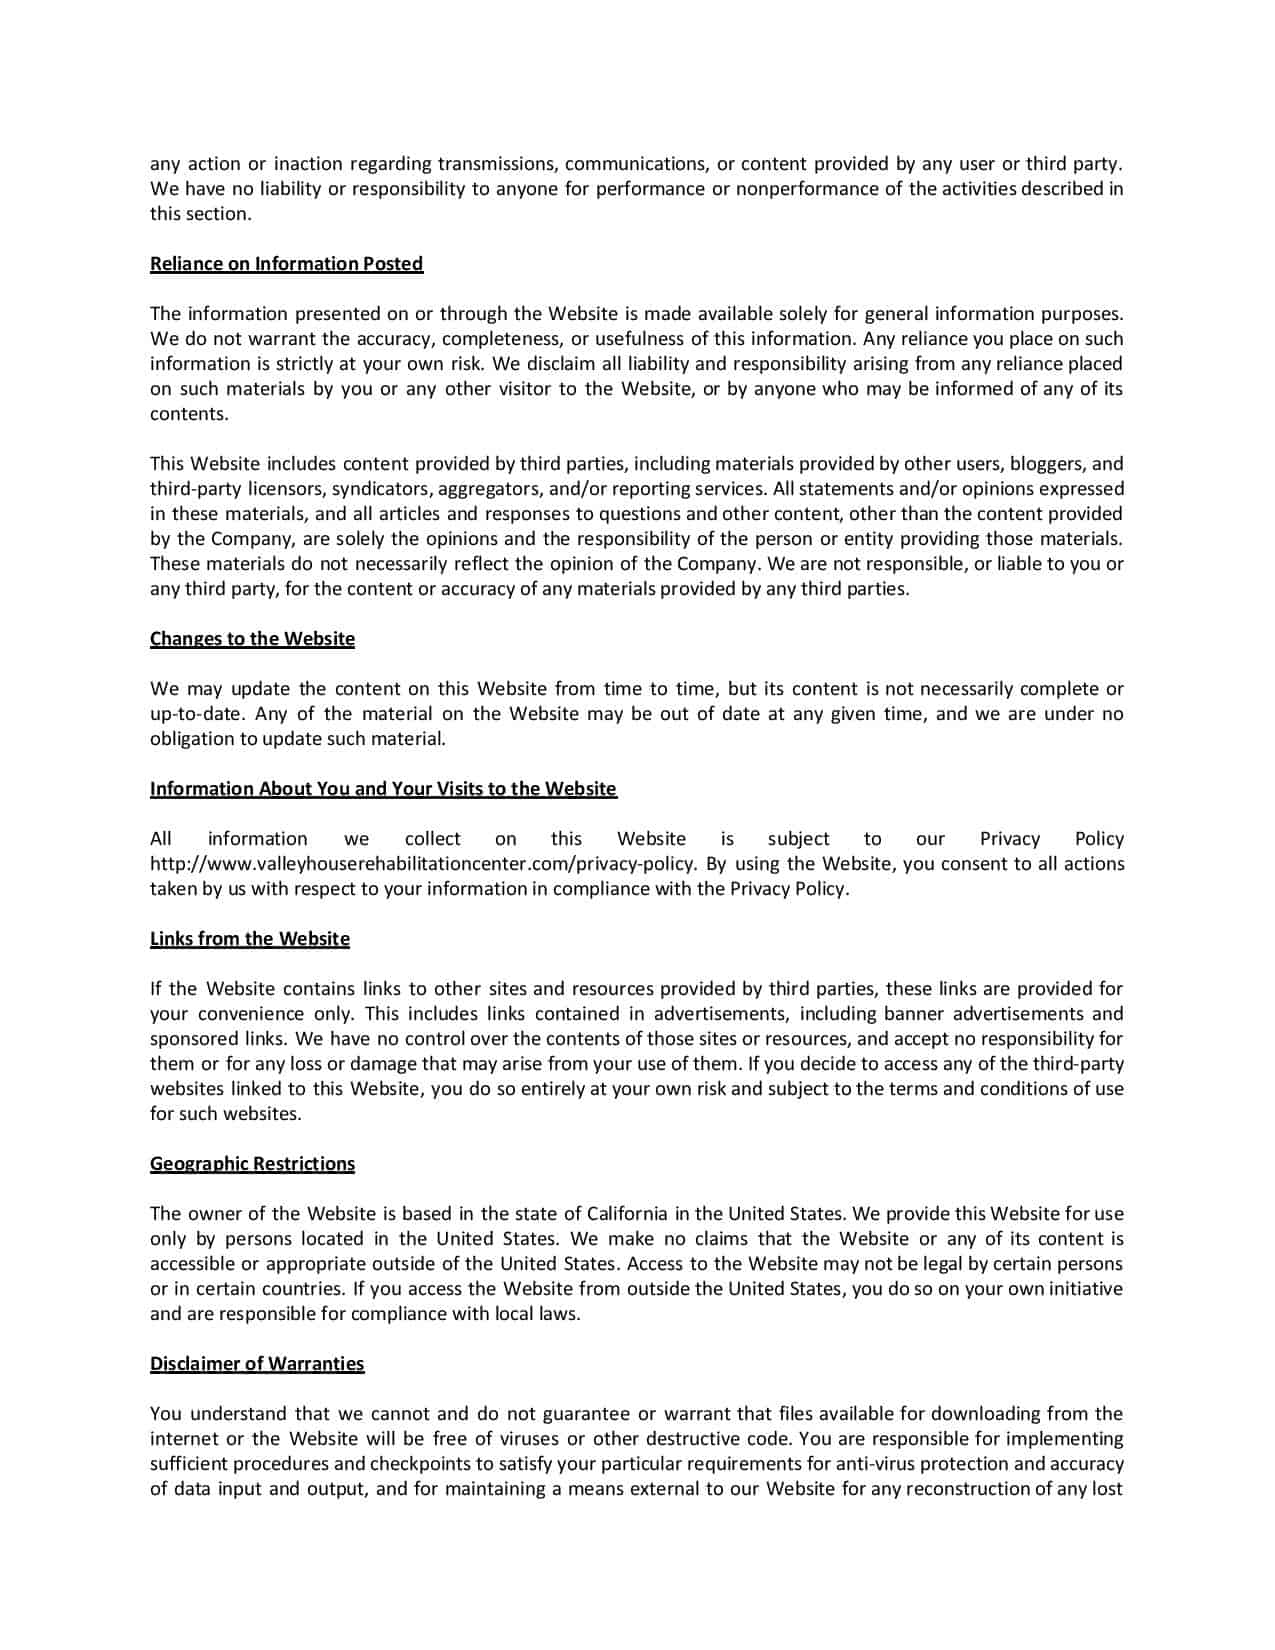 valleyhouserehabilitationcenter Terms of Use-page-004